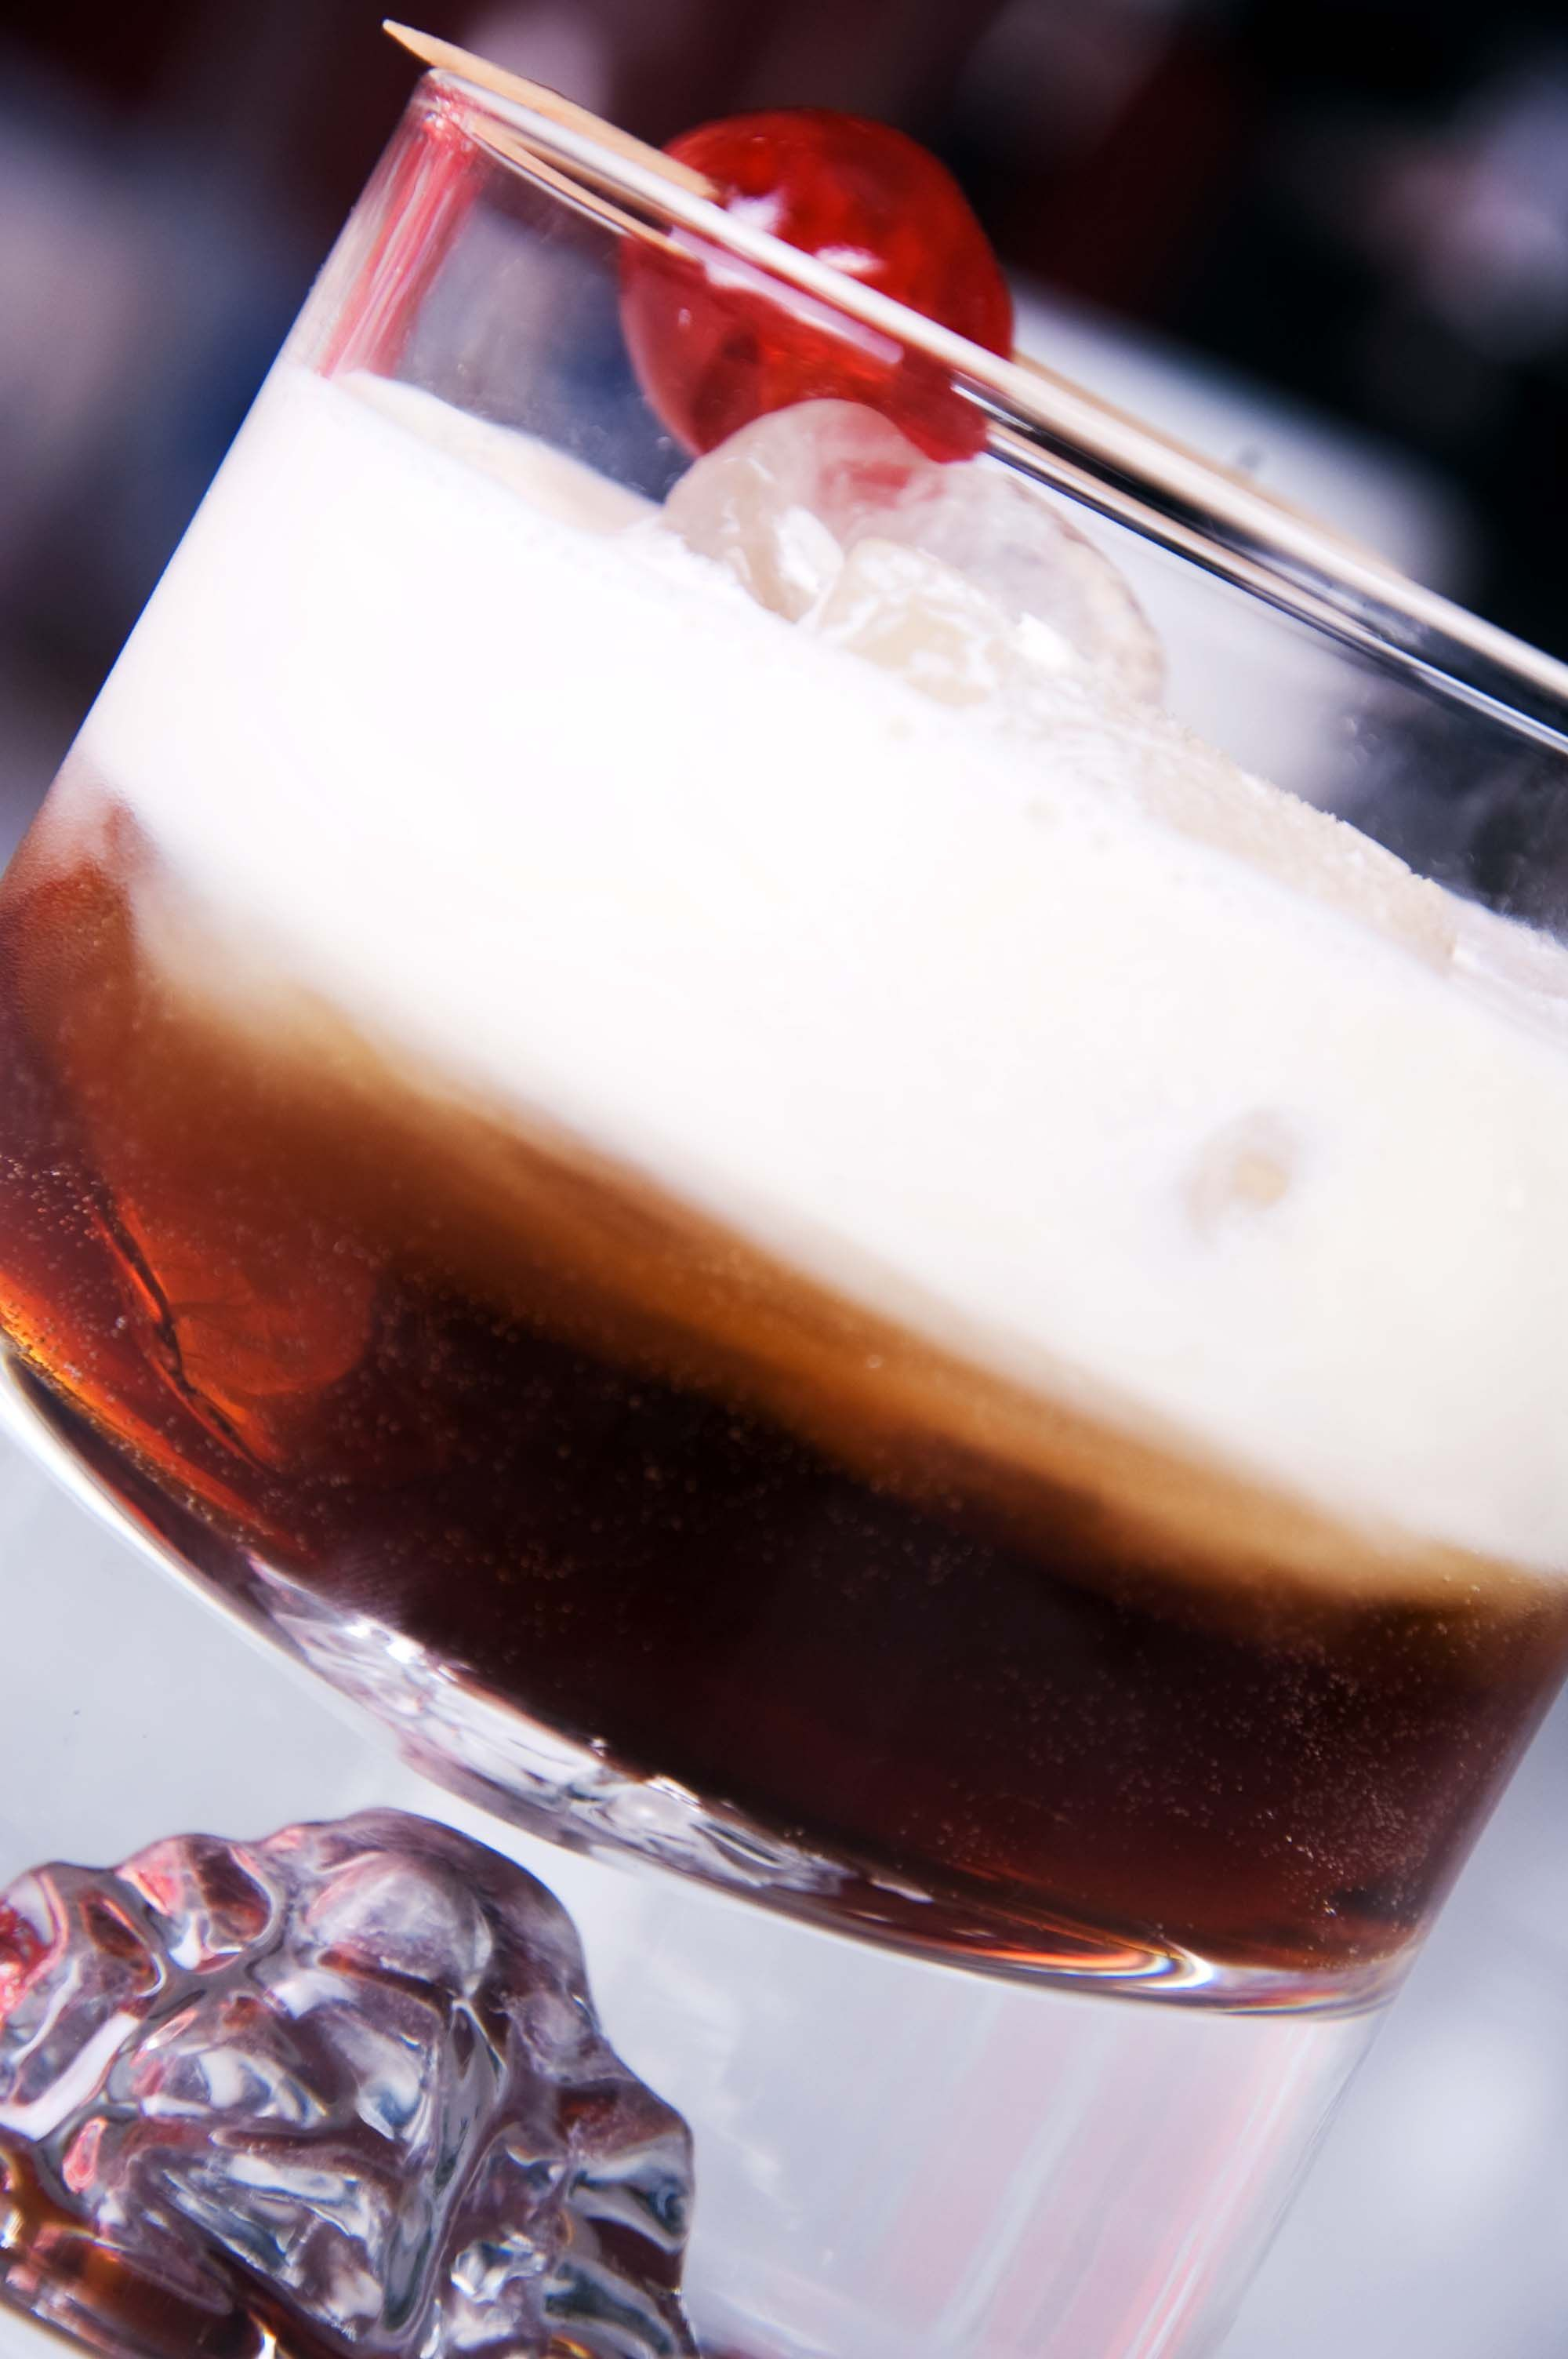 White Russian 1cl Vodka 1cl Coffee Liquor E G Kahlua Maison Strauss Tia Maria 1cl Cream Directi White Russian White Russian Recipes Russian Recipes